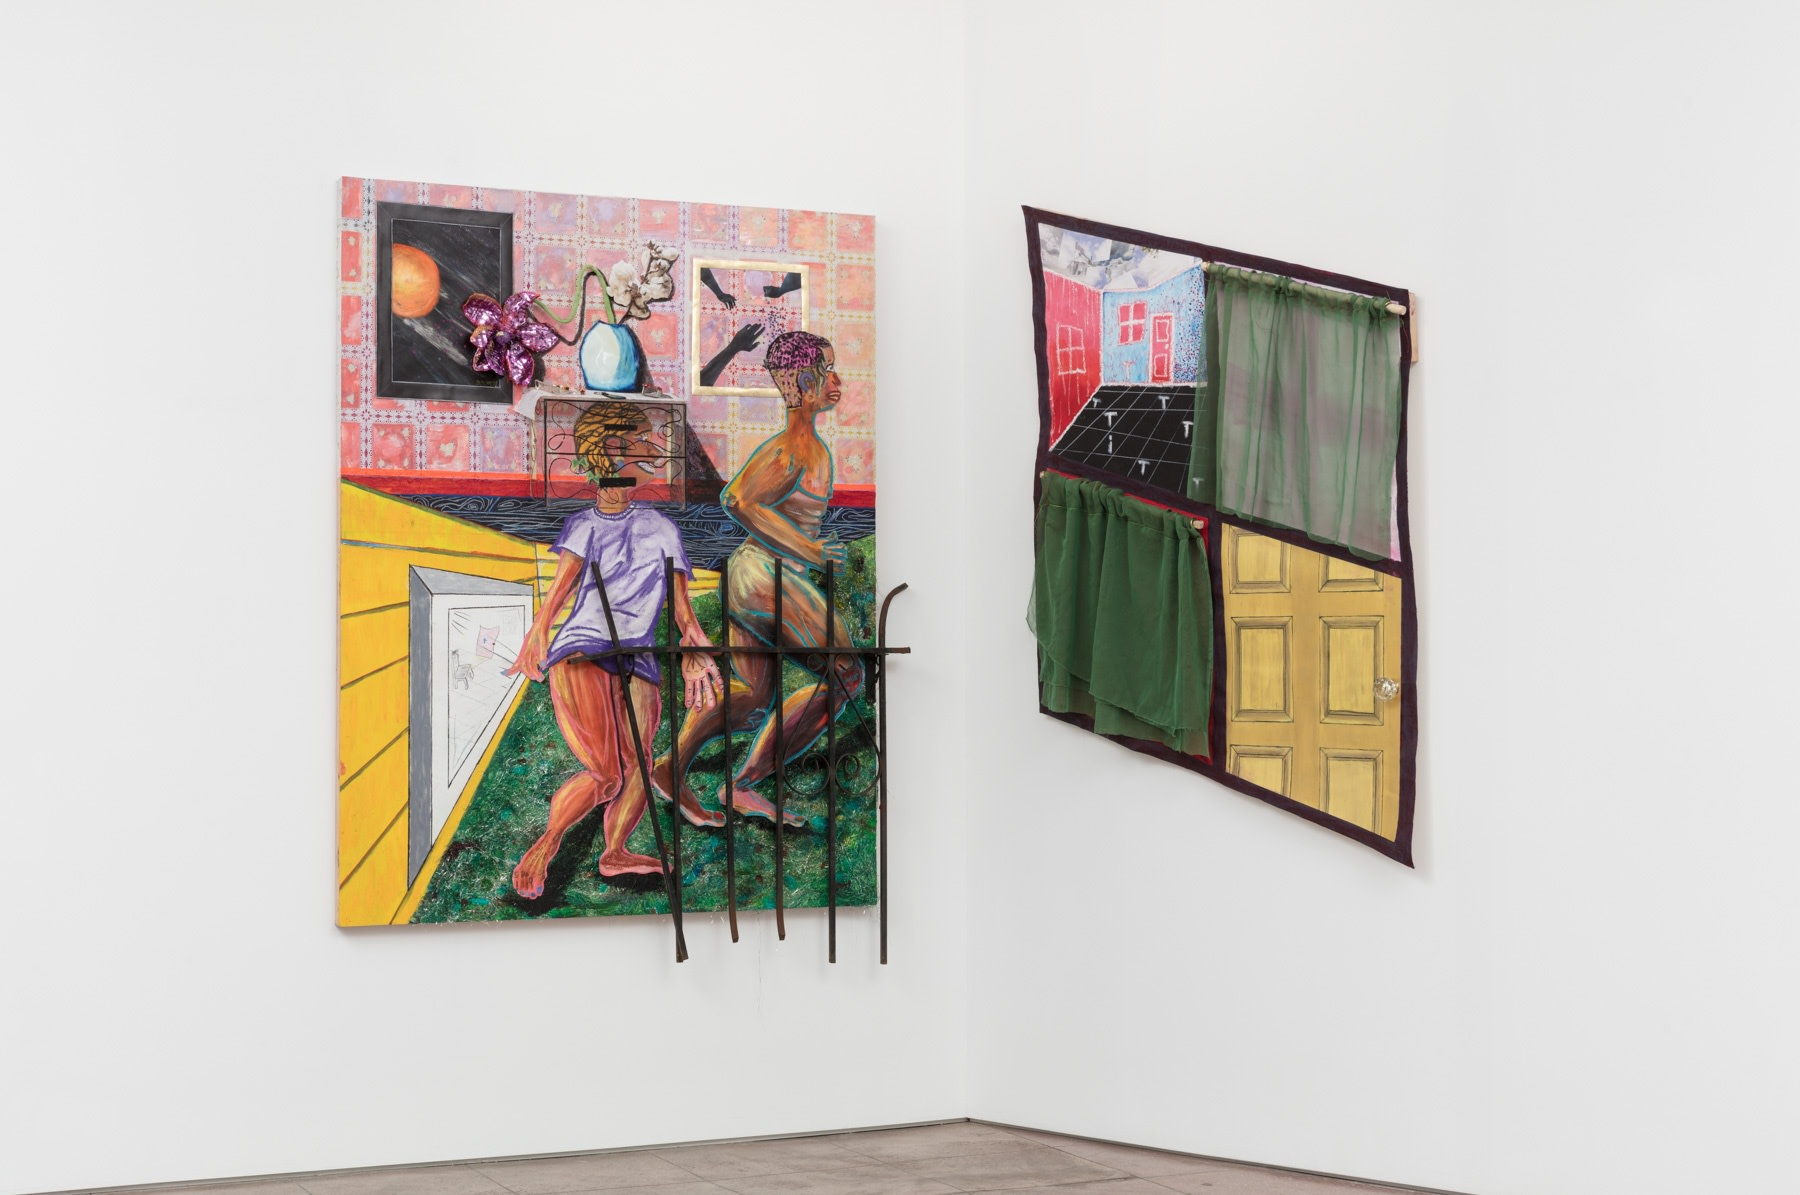 Devin N. Morris, 12:44 pm; And Then A Breeze Swept Across the Floor, Stirring Out The Window In Disbelief, 2019, Left panel: Acrylic, oil pastel, tensile, watercolor, iron gate, collage, plexiglass, leather, glass tray, plastic beads, plastic keychain, me